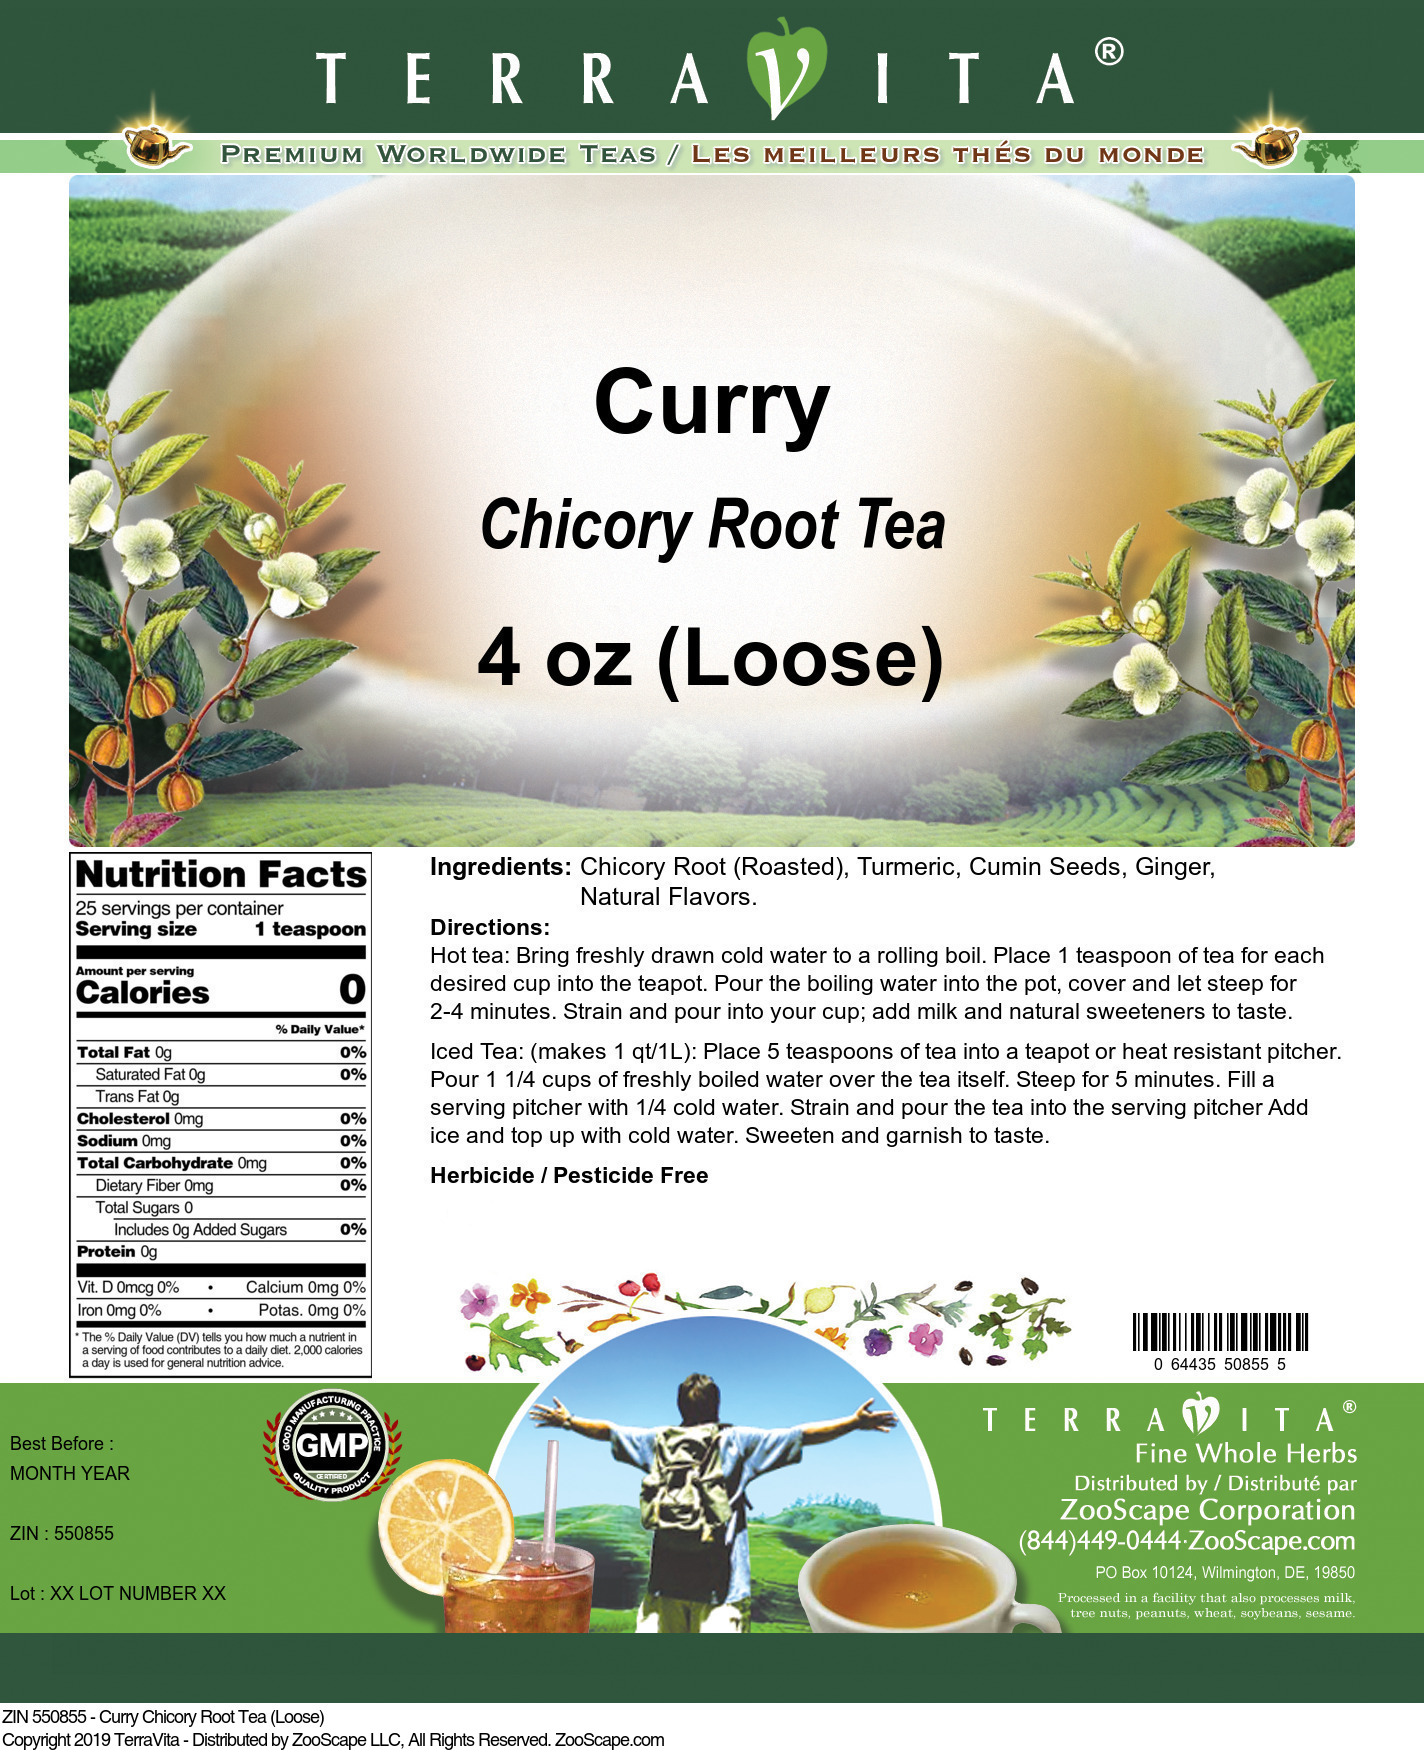 Curry Chicory Root Tea (Loose)